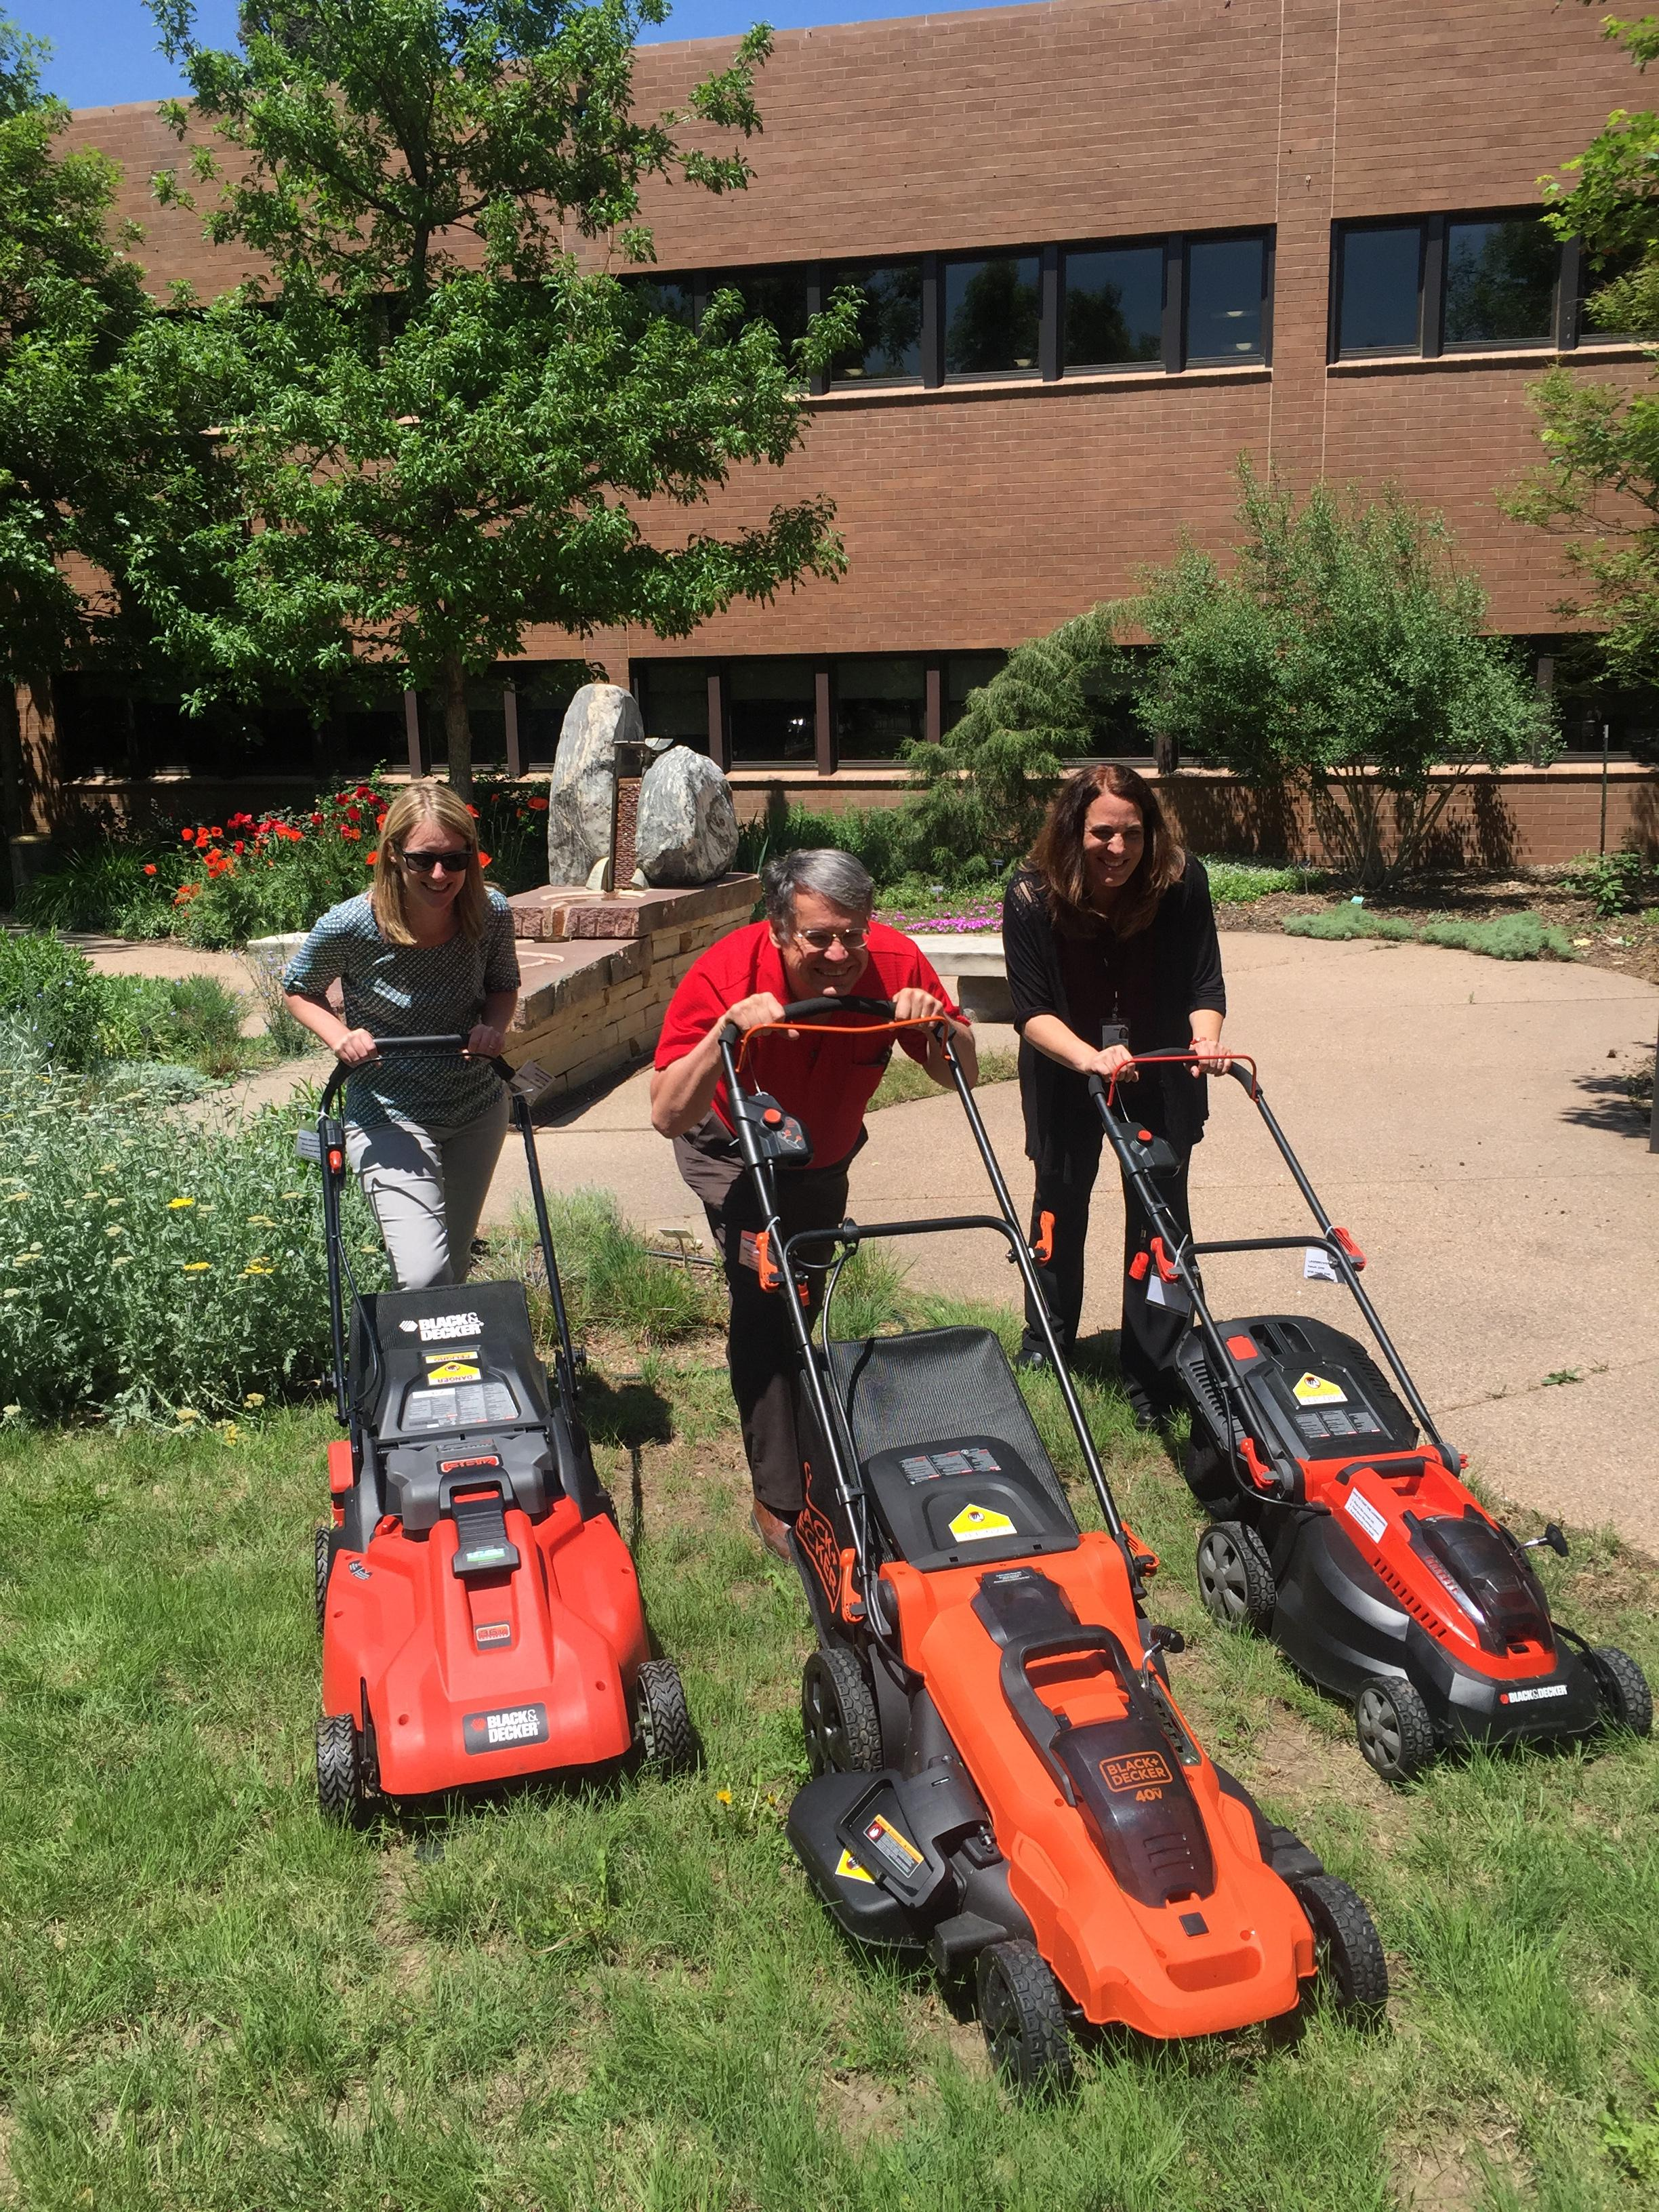 Spotlight image: Electric Lawn Mower Winners Announced